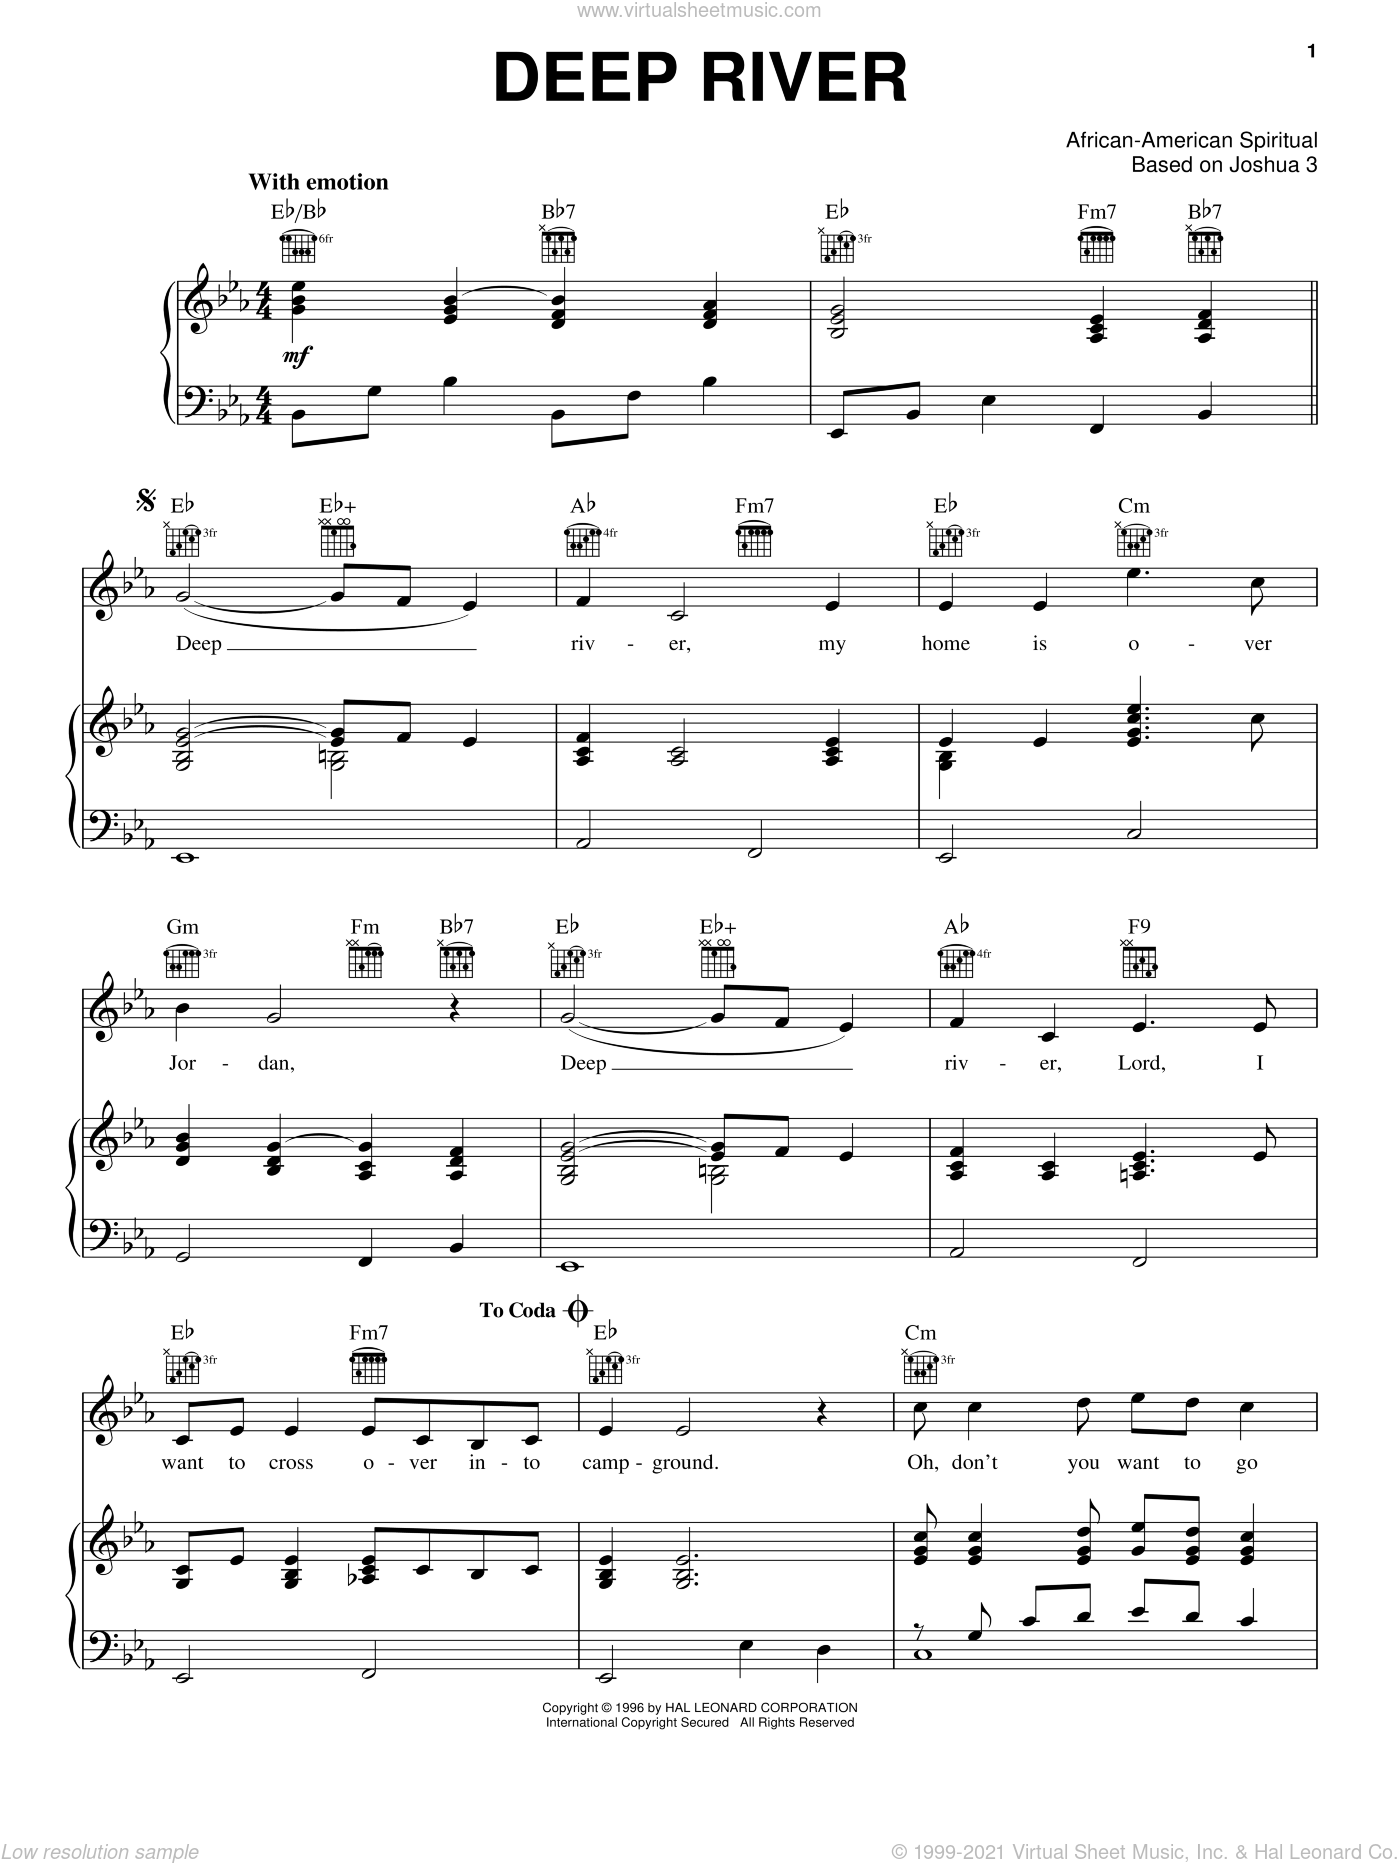 Deep River sheet music for voice, piano or guitar, intermediate skill level